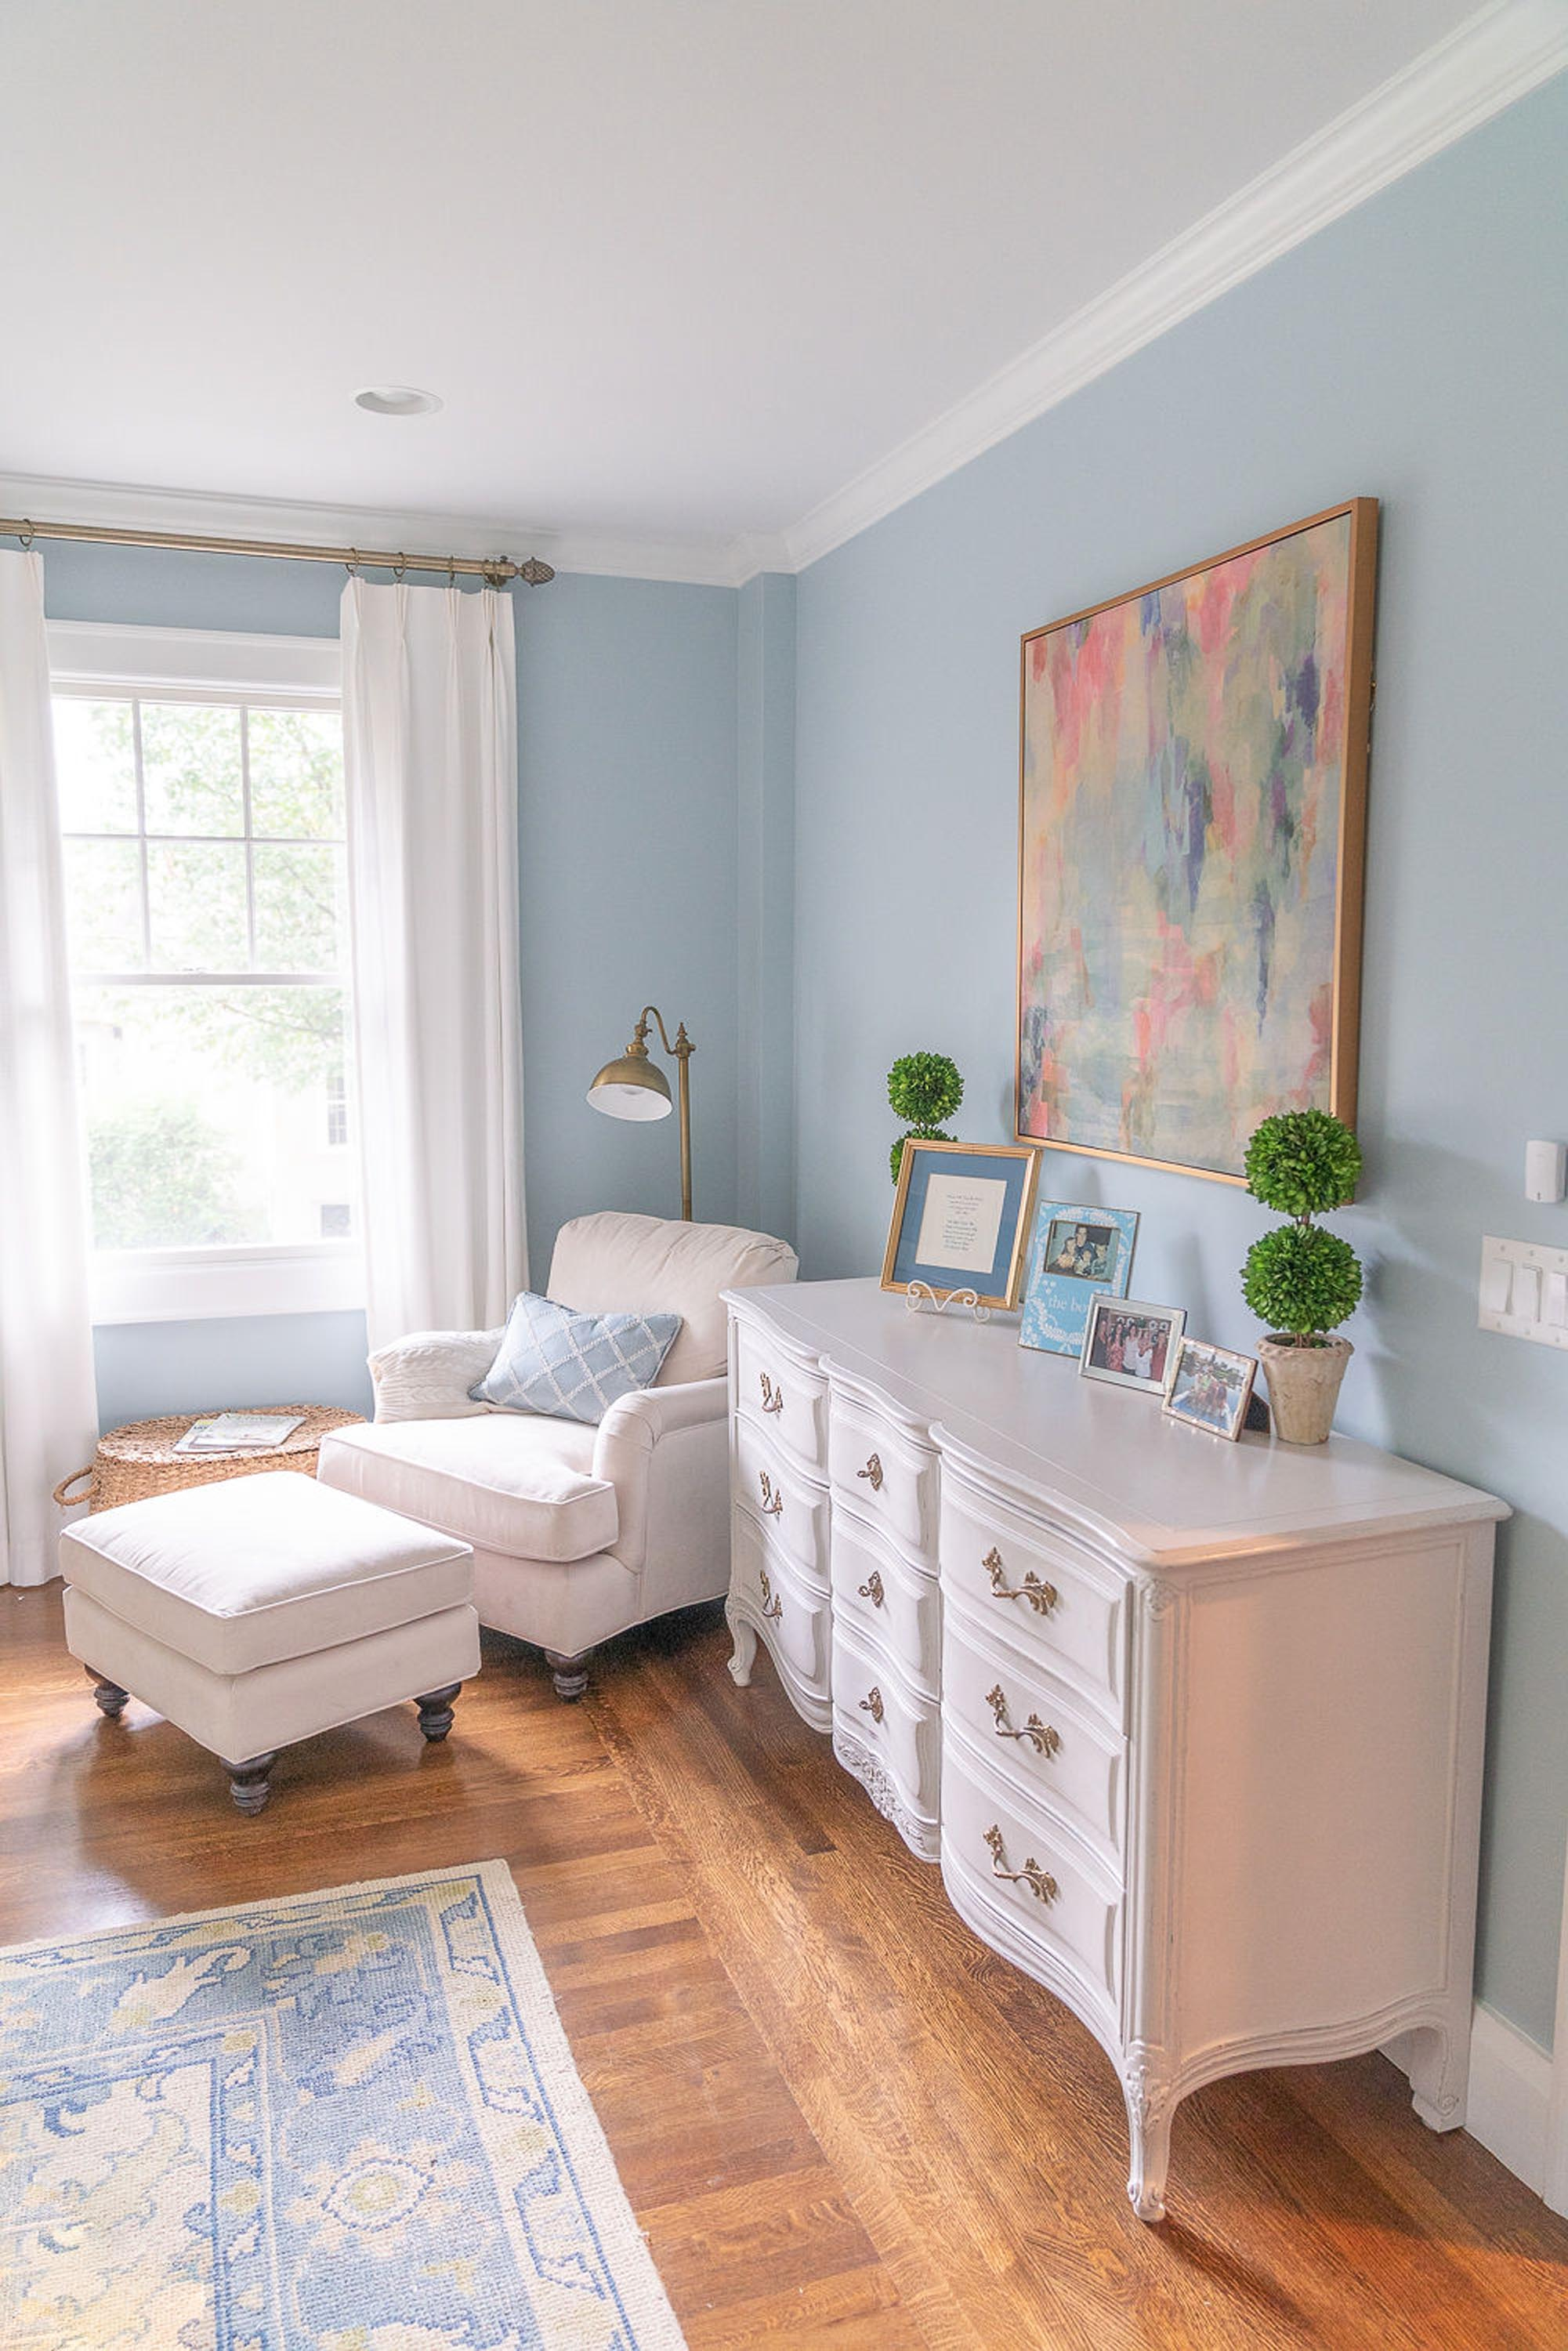 Living room with white chair, white wooden cabinet, frames and artwork on wall